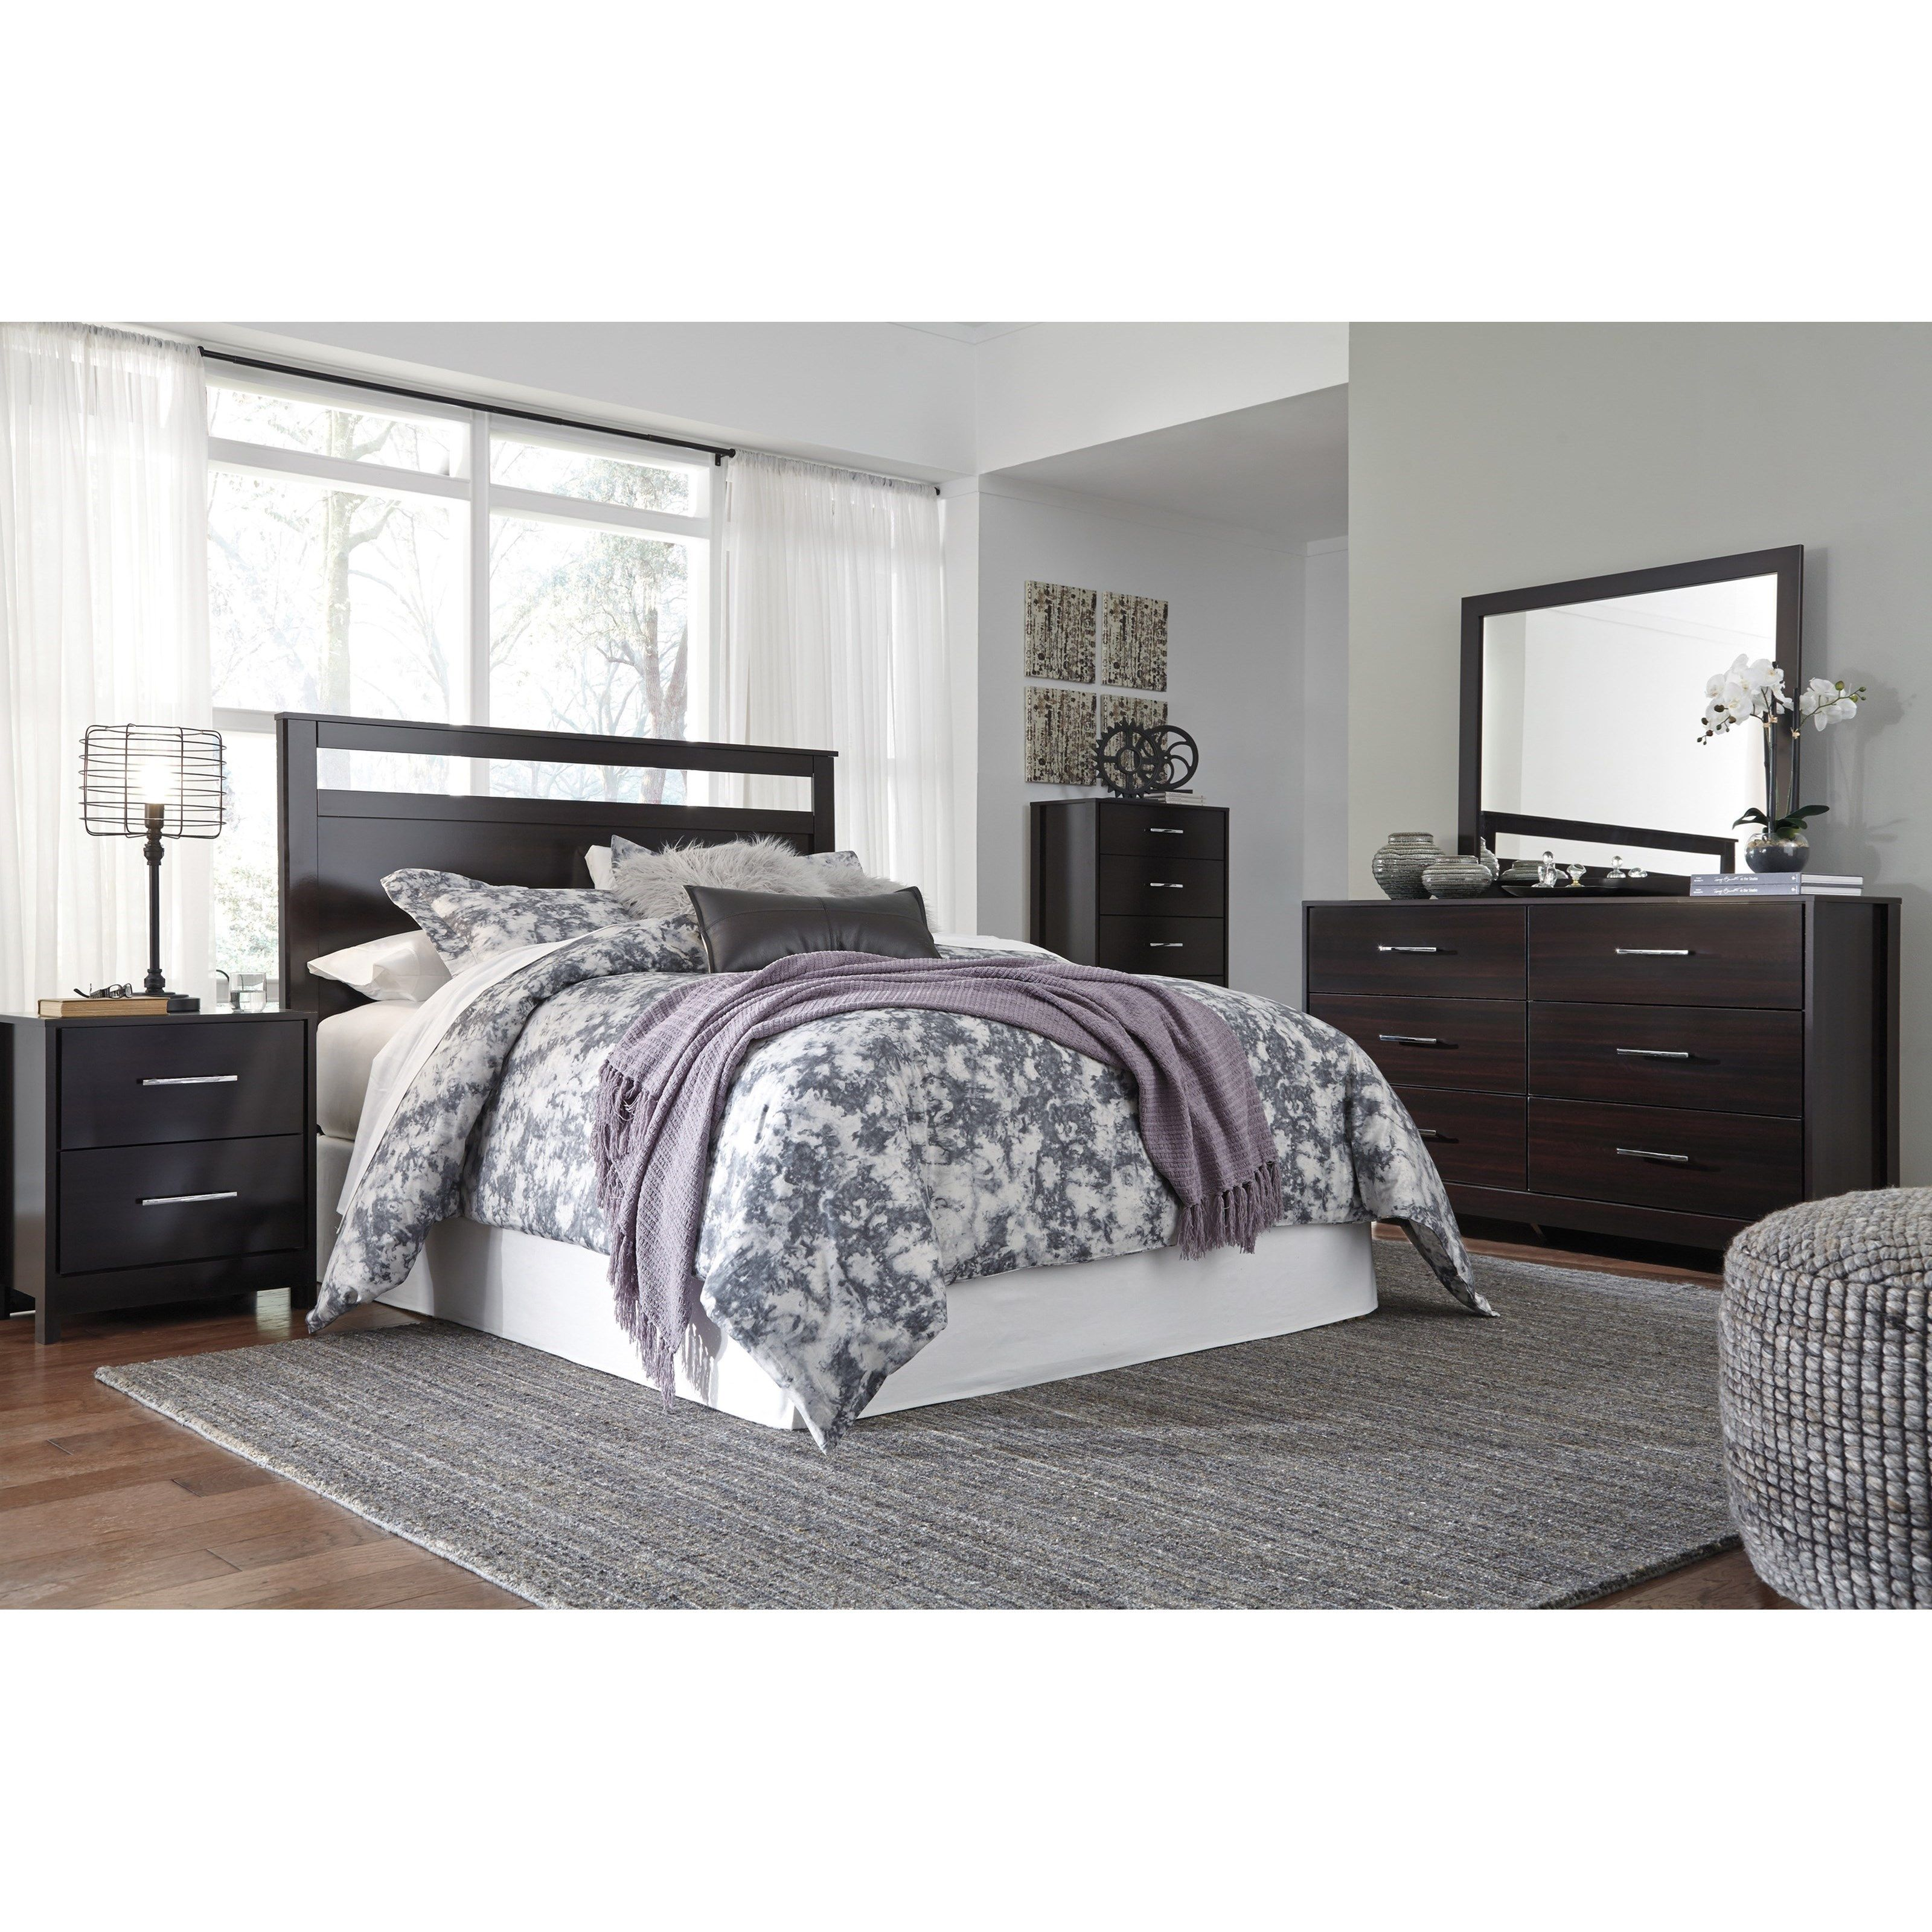 Agella Queen Full Bedroom Group by Signature Design by Ashley at